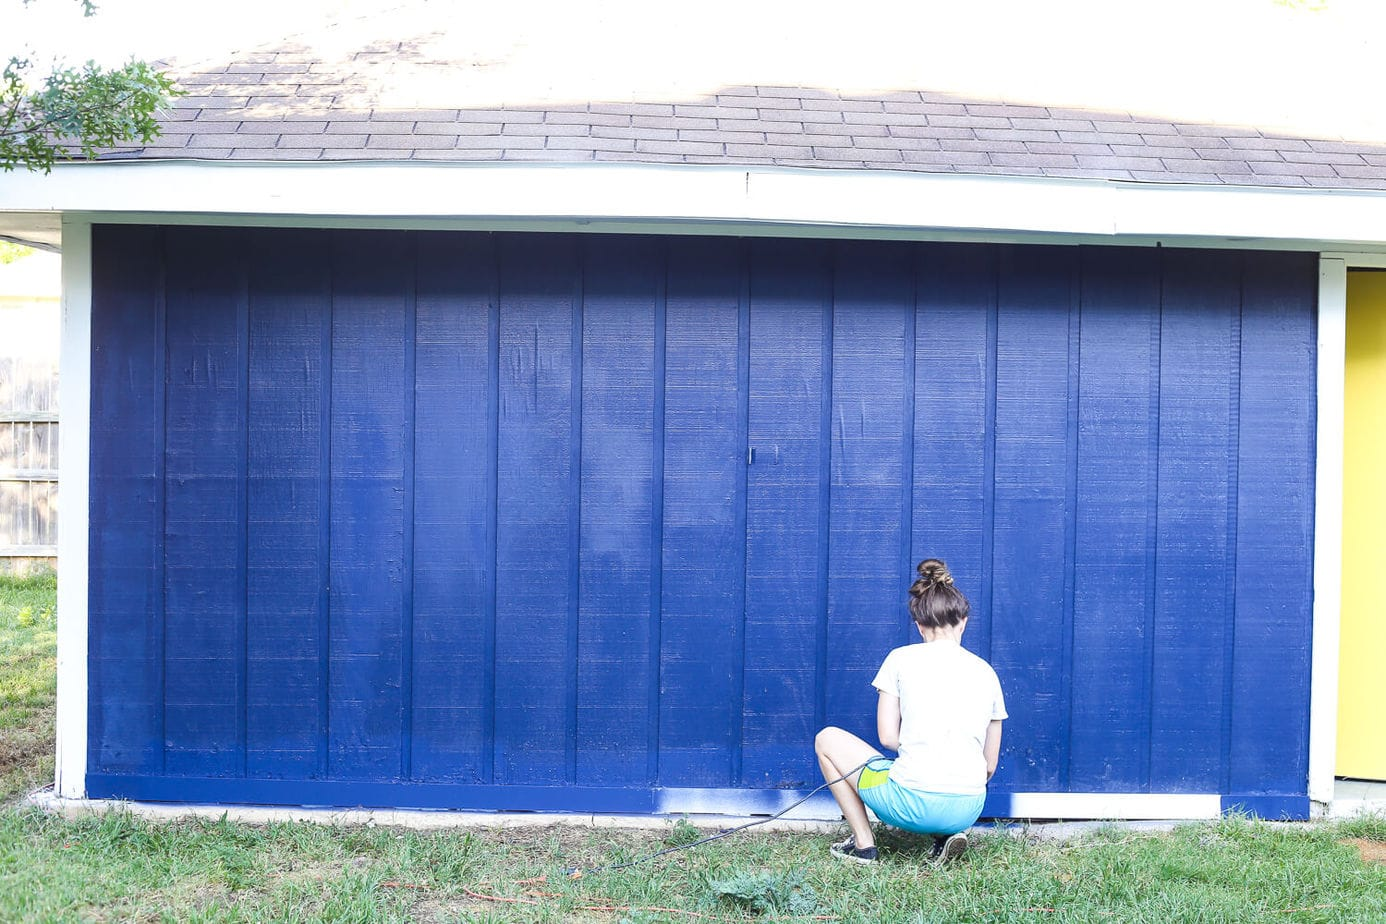 How to paint an exterior building using a paint sprayer - it will make a huge difference in how your entire yard looks and feels!